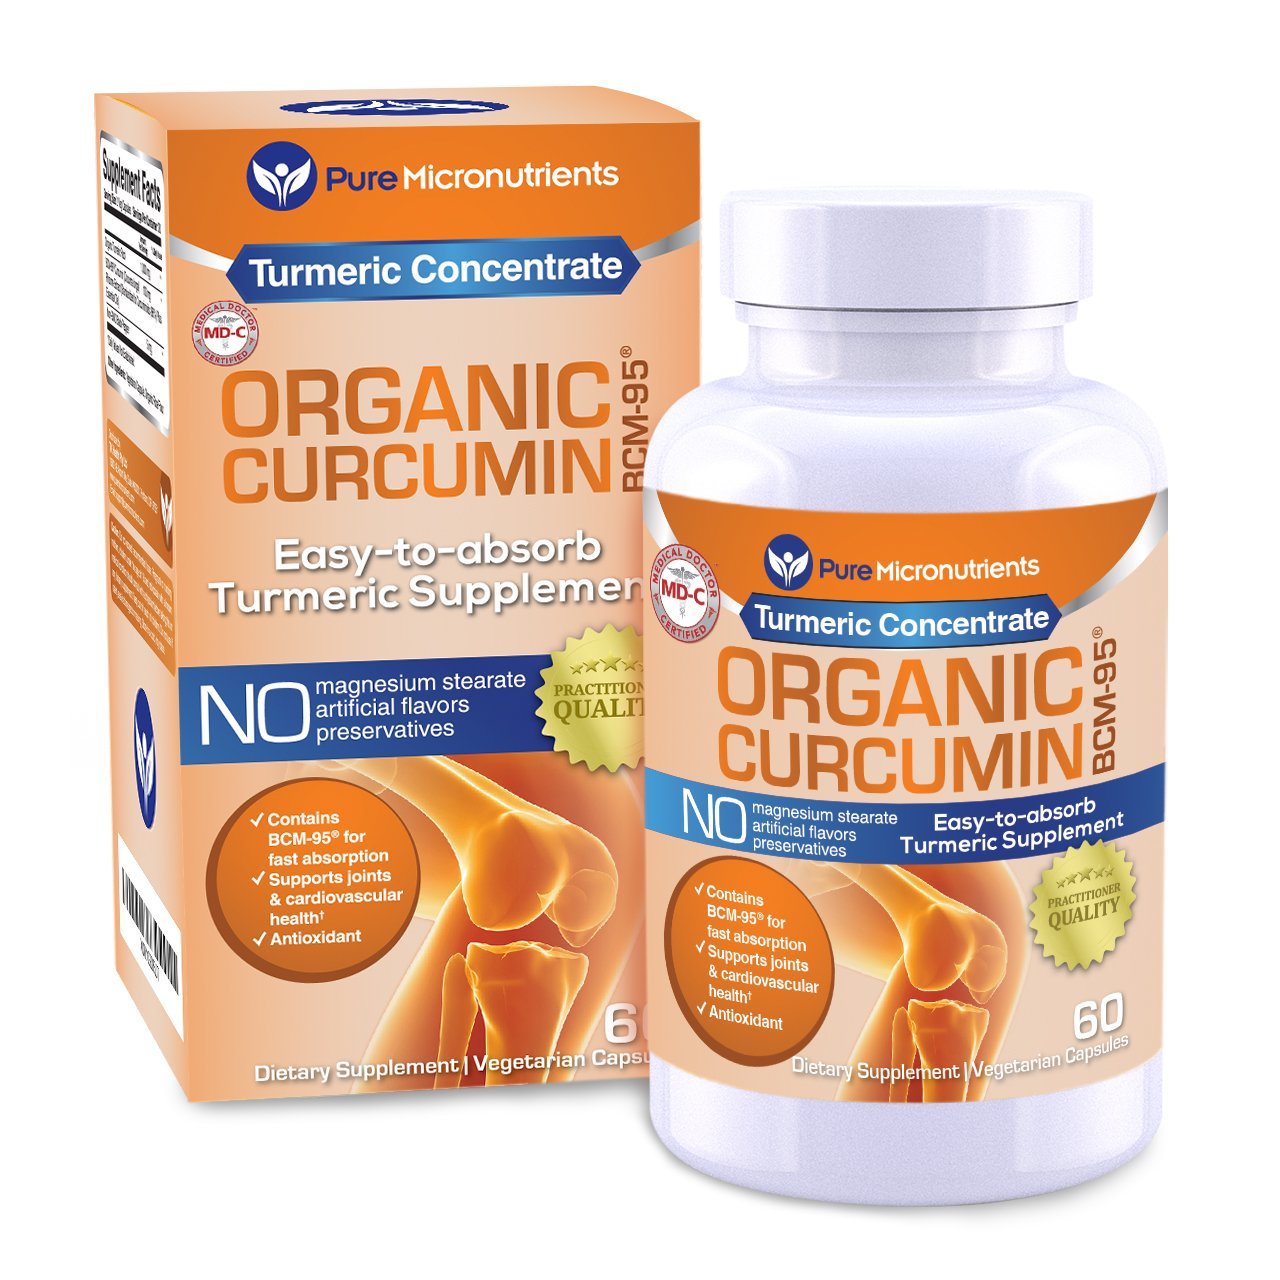 Turmeric Curcumin BCM-95 Supplement + Black Pepper, ORGANIC, 60 Veg. Capsules, 1000 mg - Pure Micronutrients (1 Bottle)